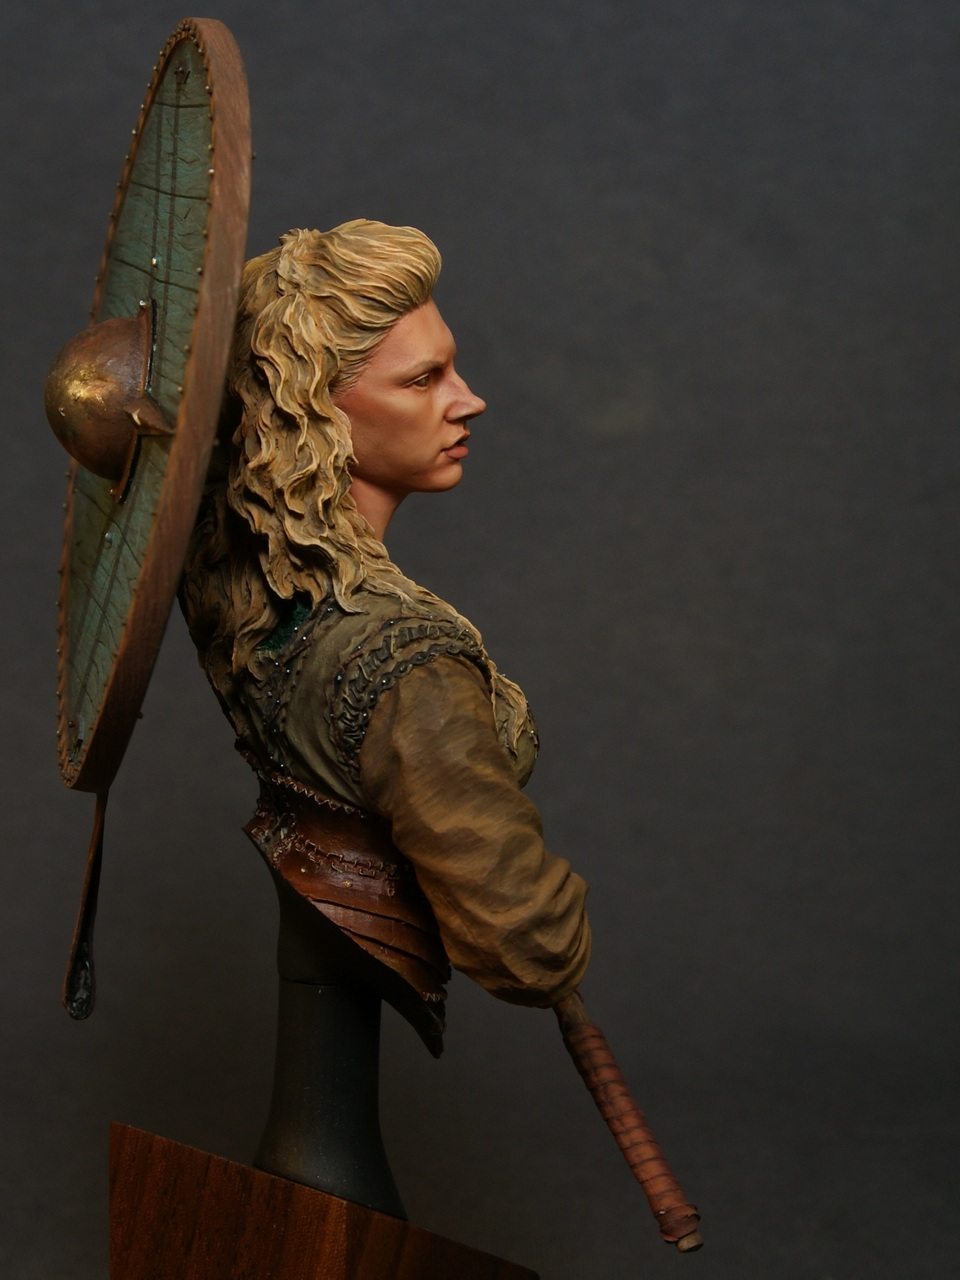 Figures: Lagertha, photo #3